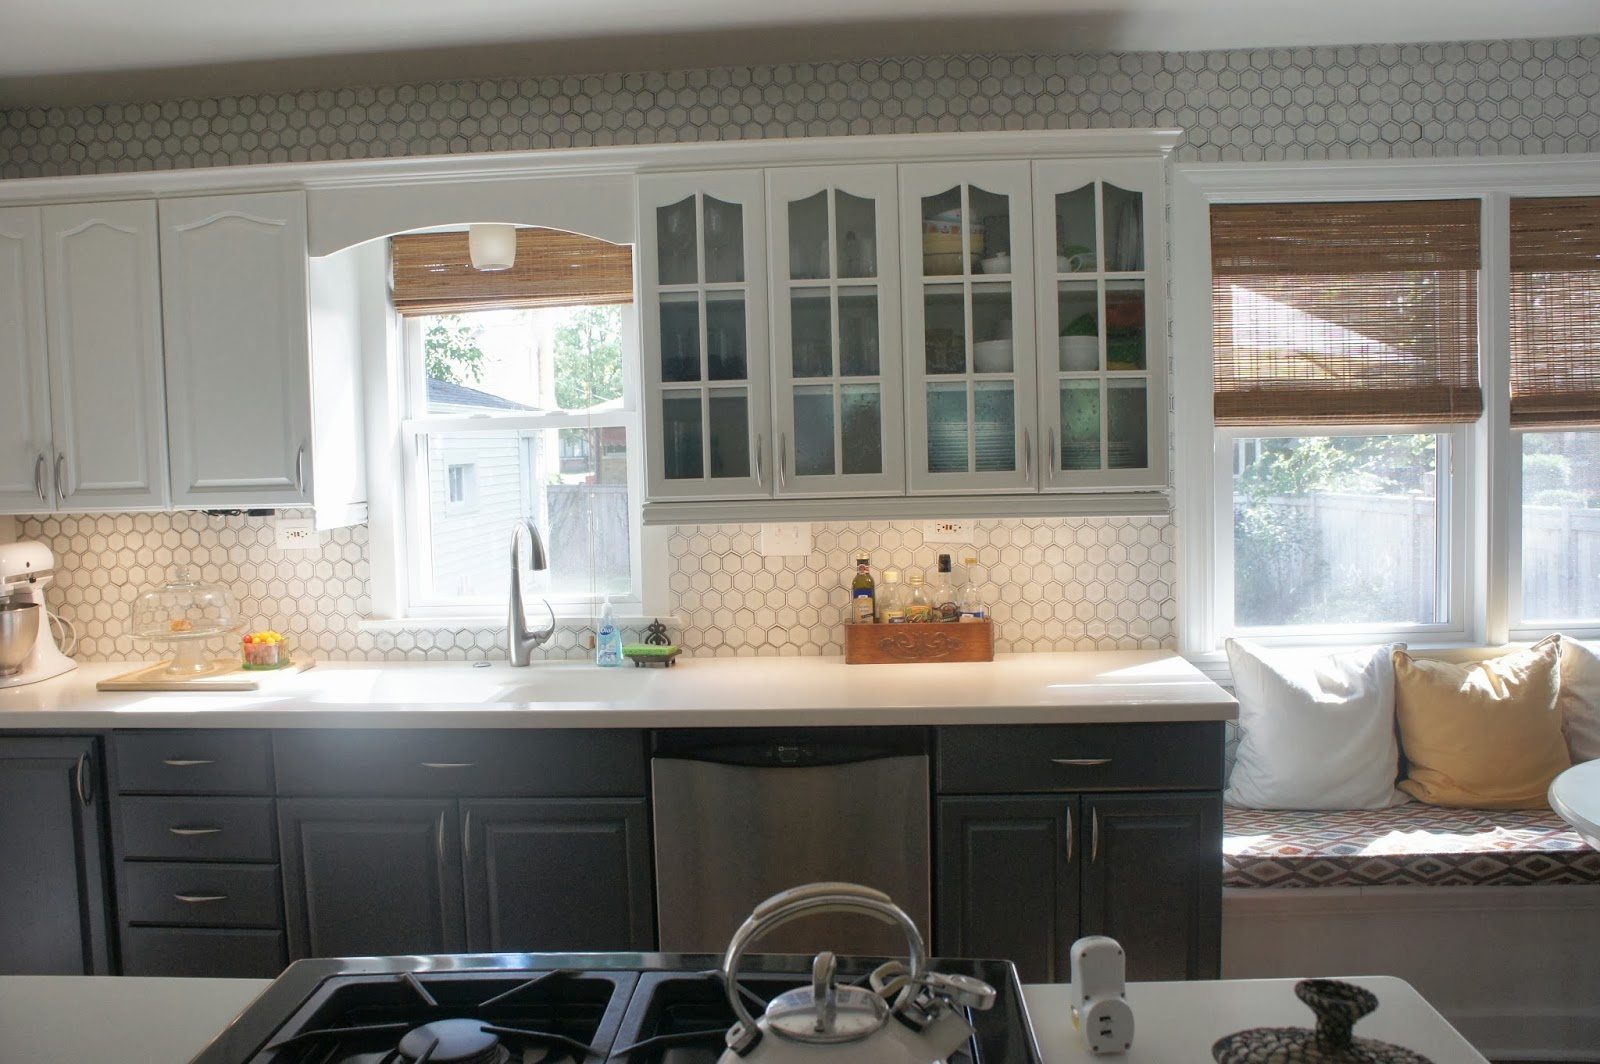 kitchen grey white makeover gray backsplash wells tile white cabinets grey backsplash kitchen subway tile outlet